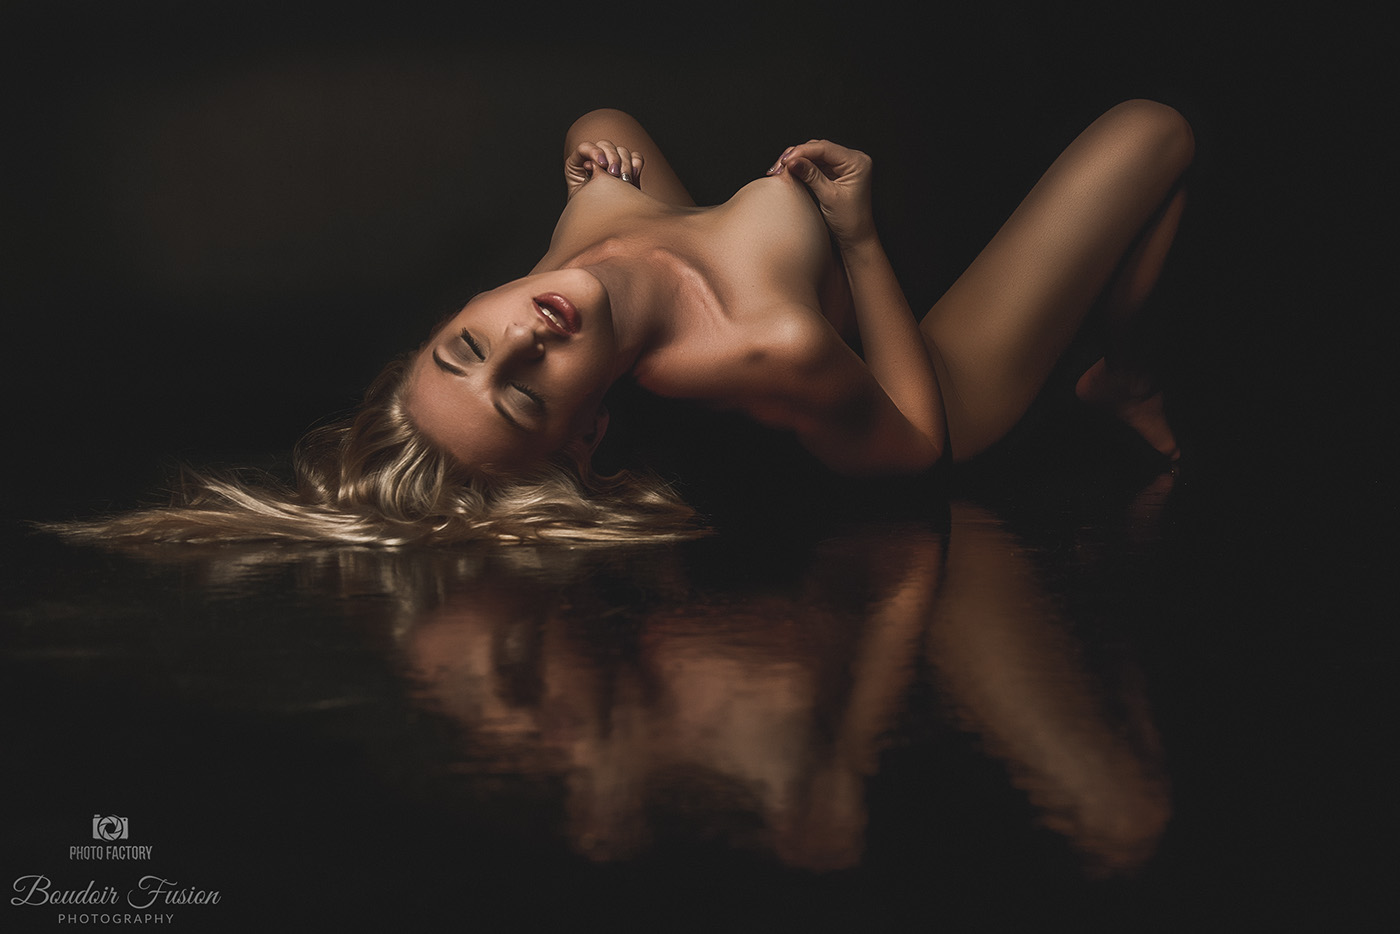 Boudoir Photography / Peter Driessel